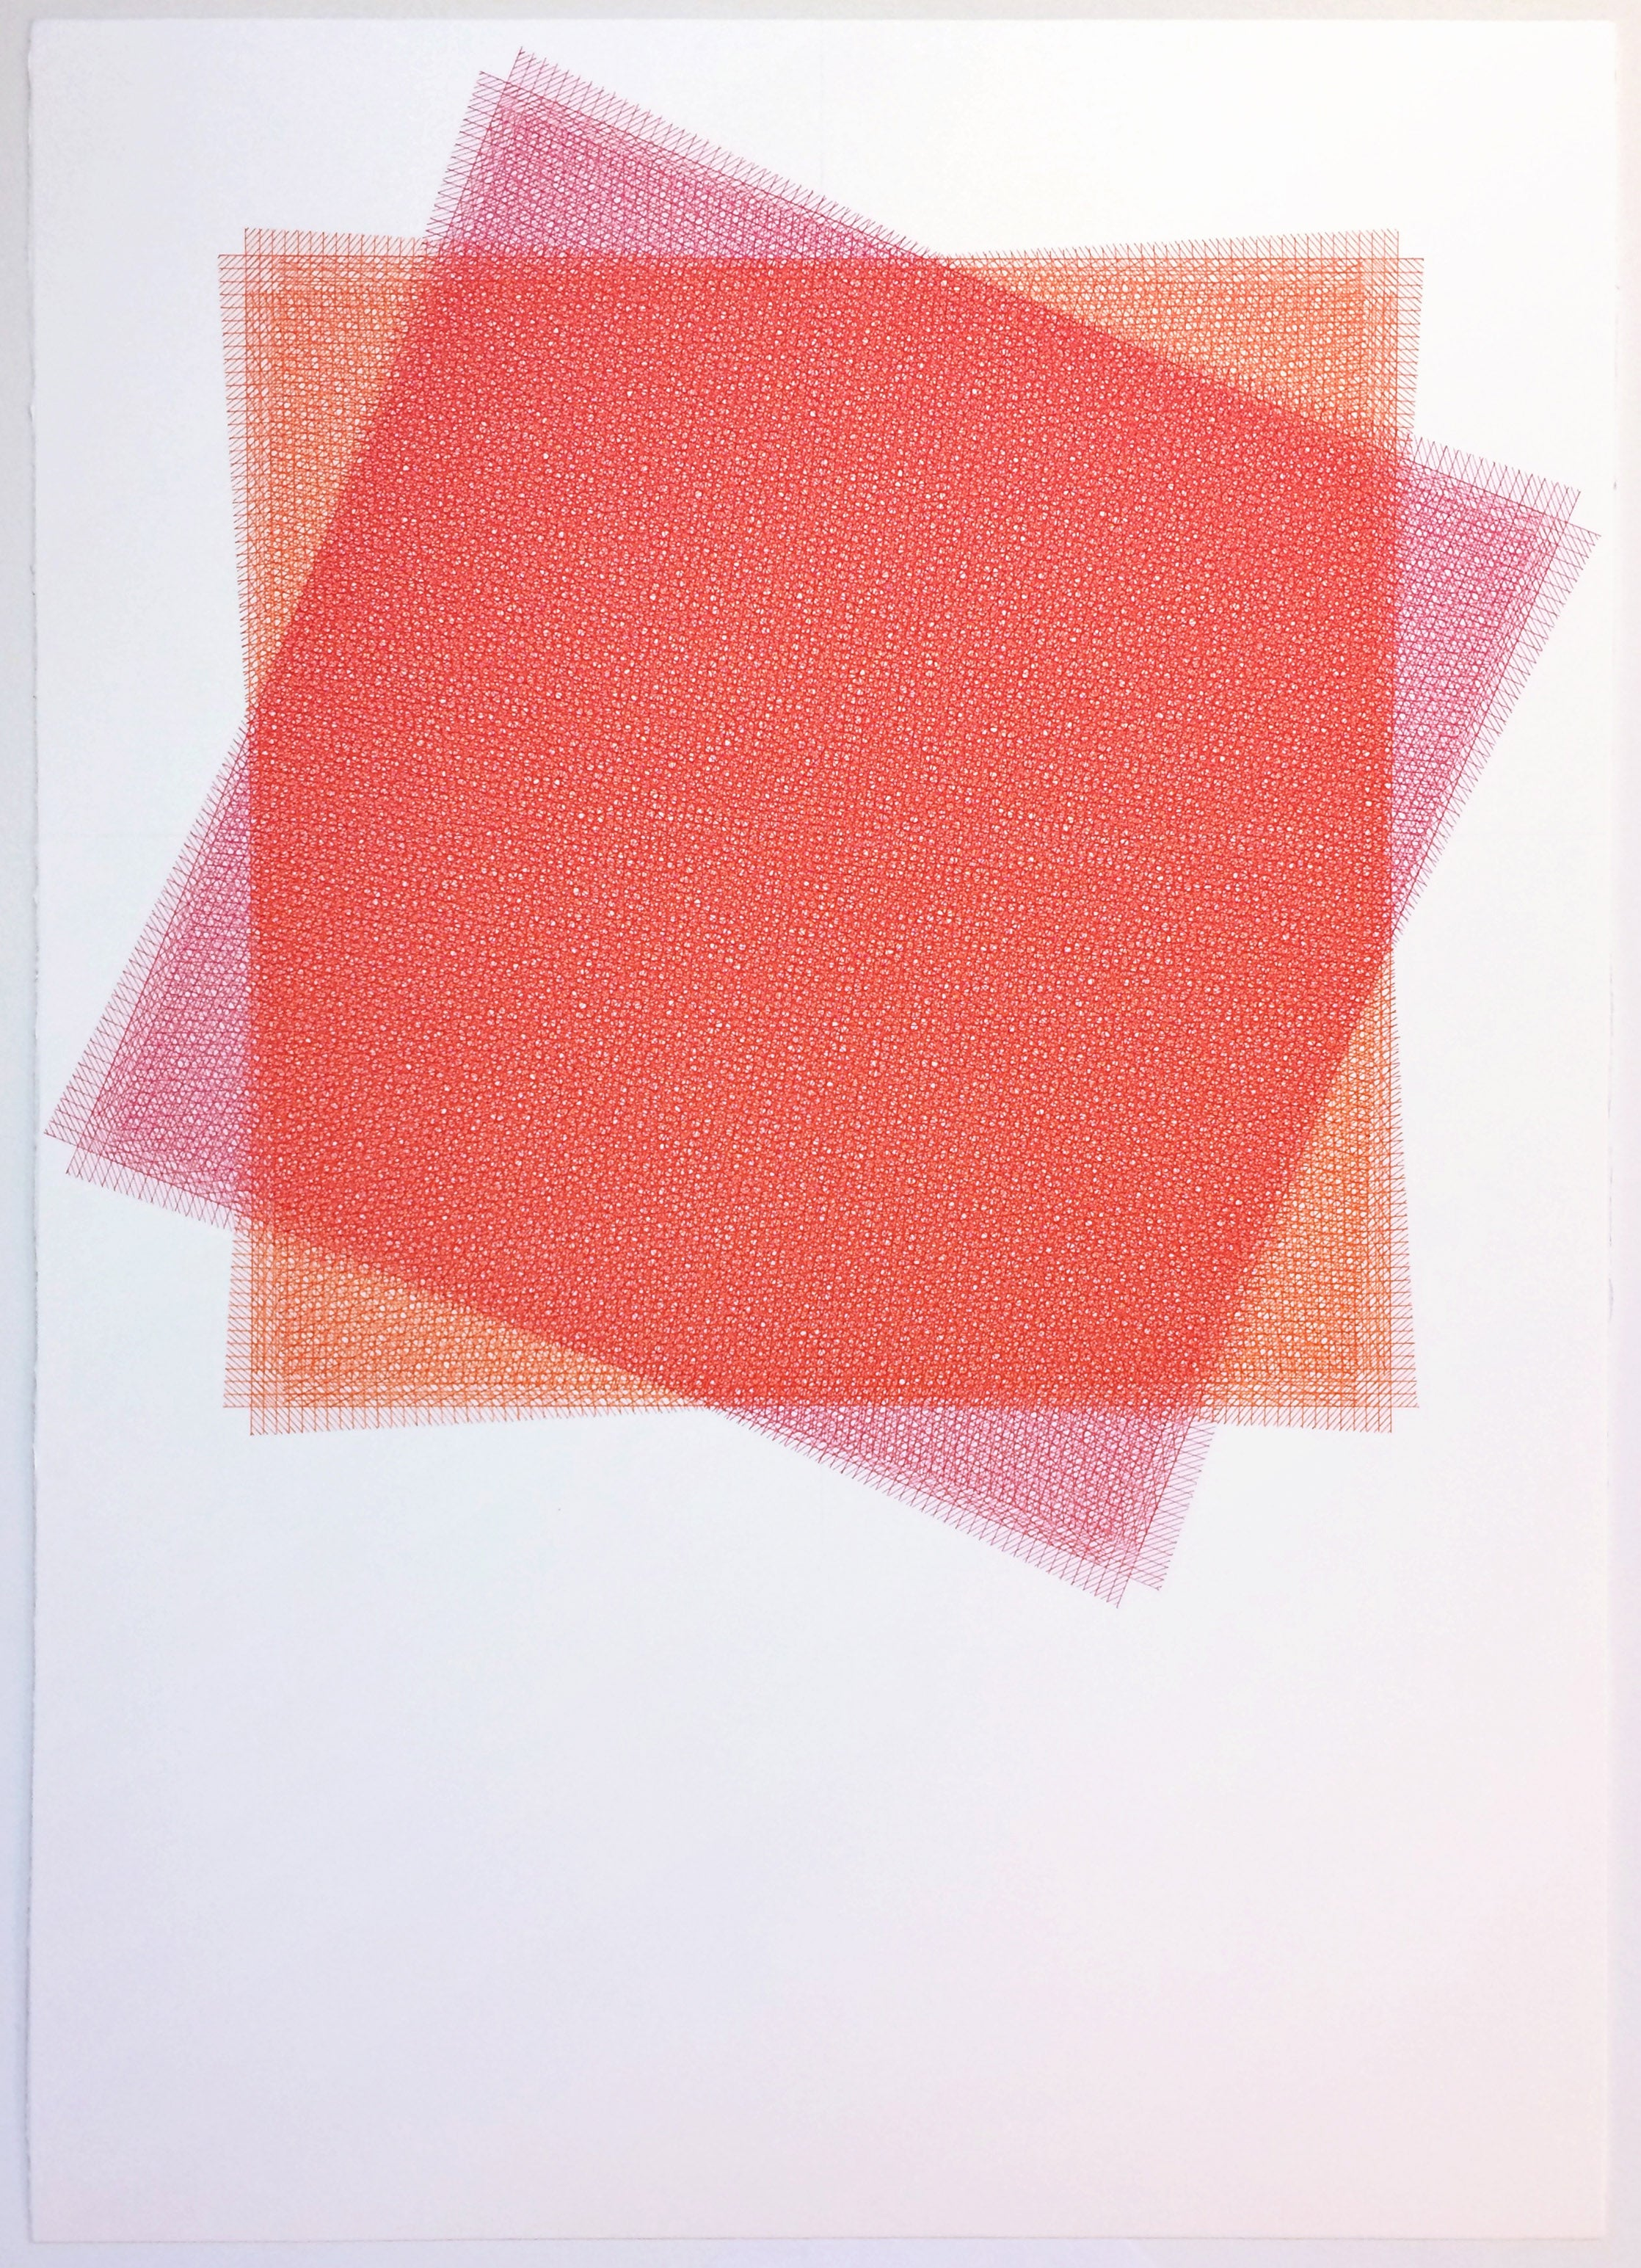 Sara Eichner, 16 Layers, Red and Pink Square, 2015, Ink, Rag Paper, Pen